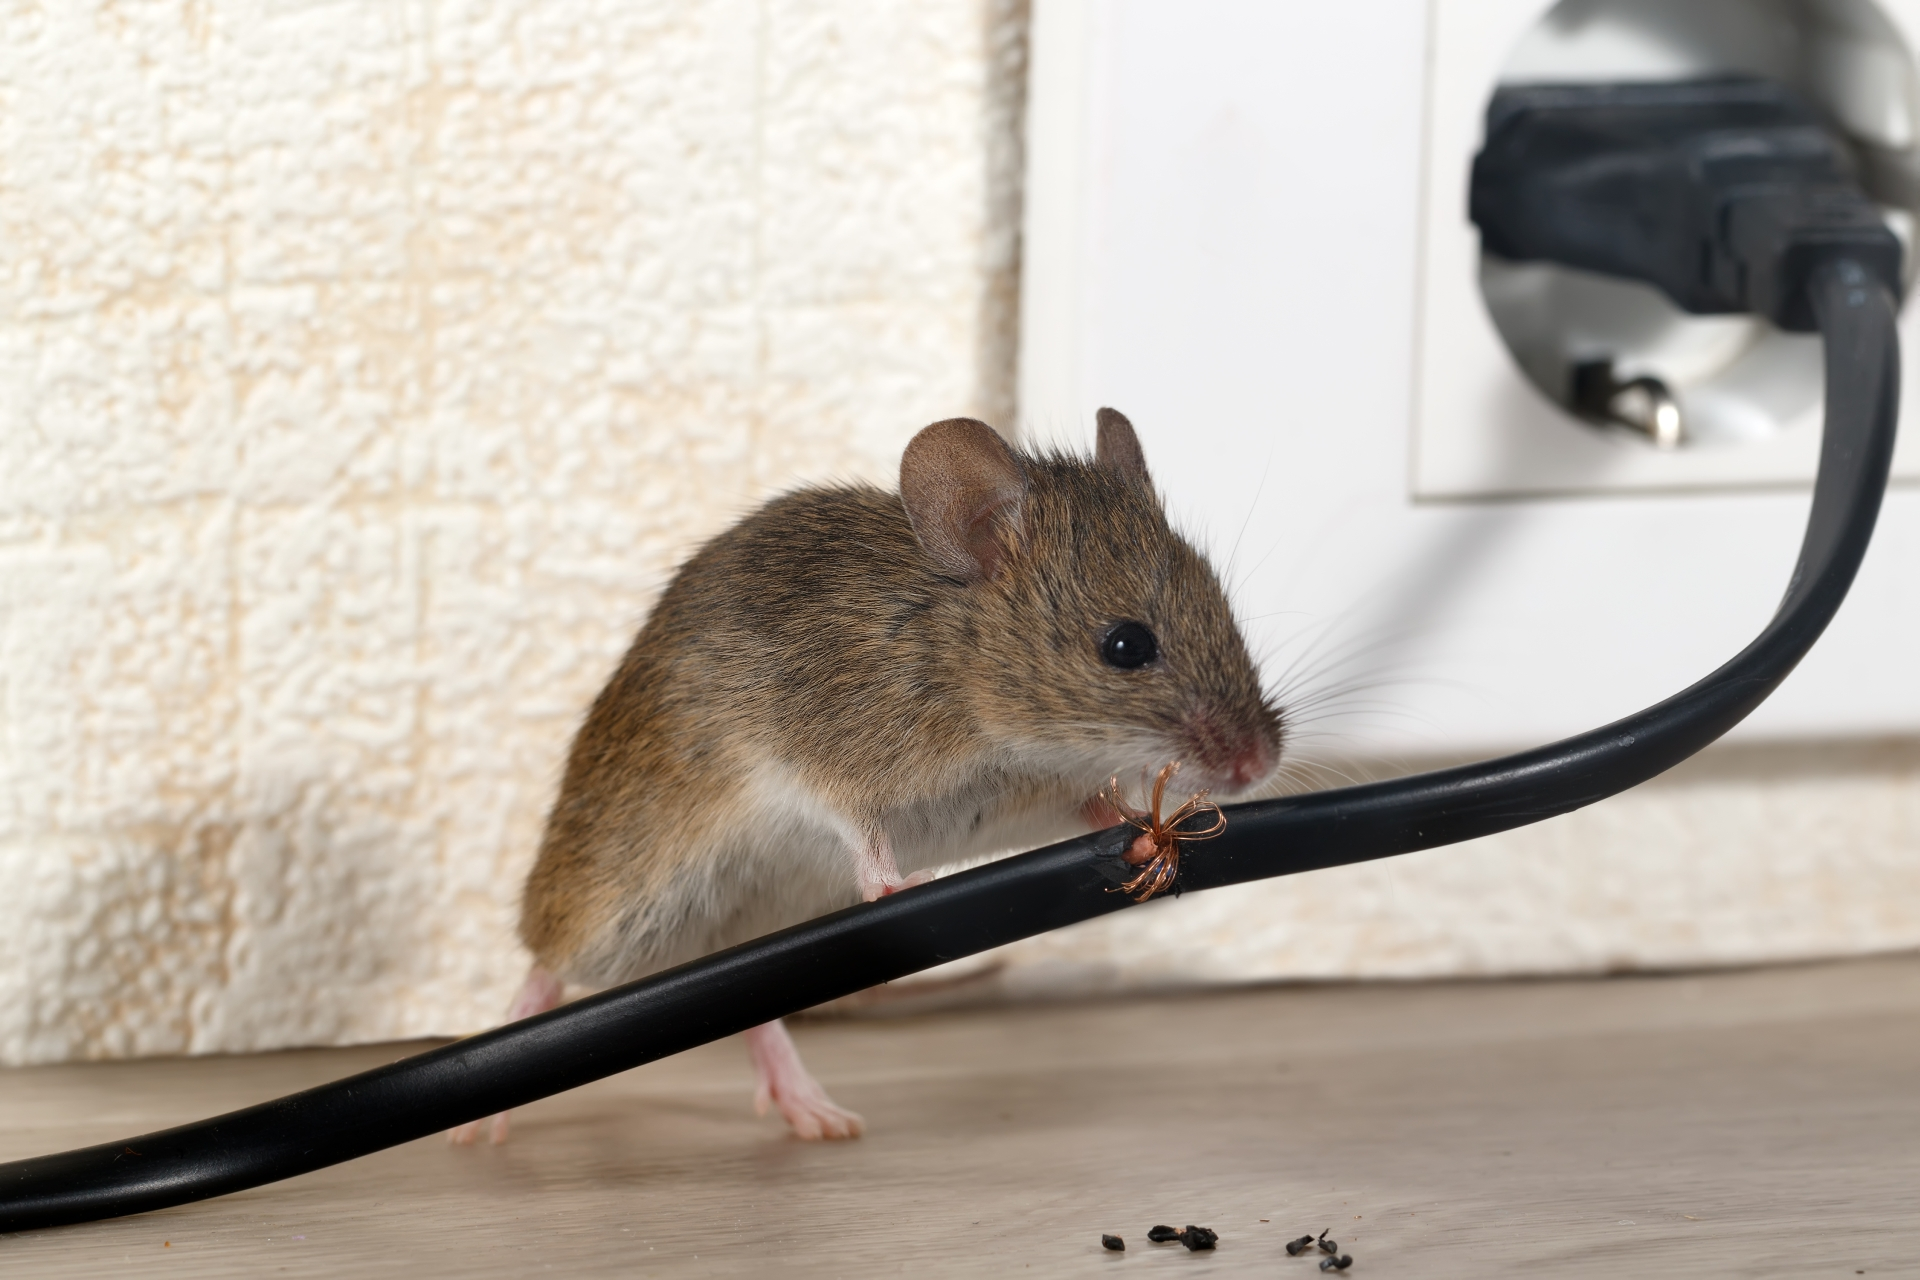 Mice Infestation, Pest Control in Pimlico, SW1. Call Now 020 8166 9746